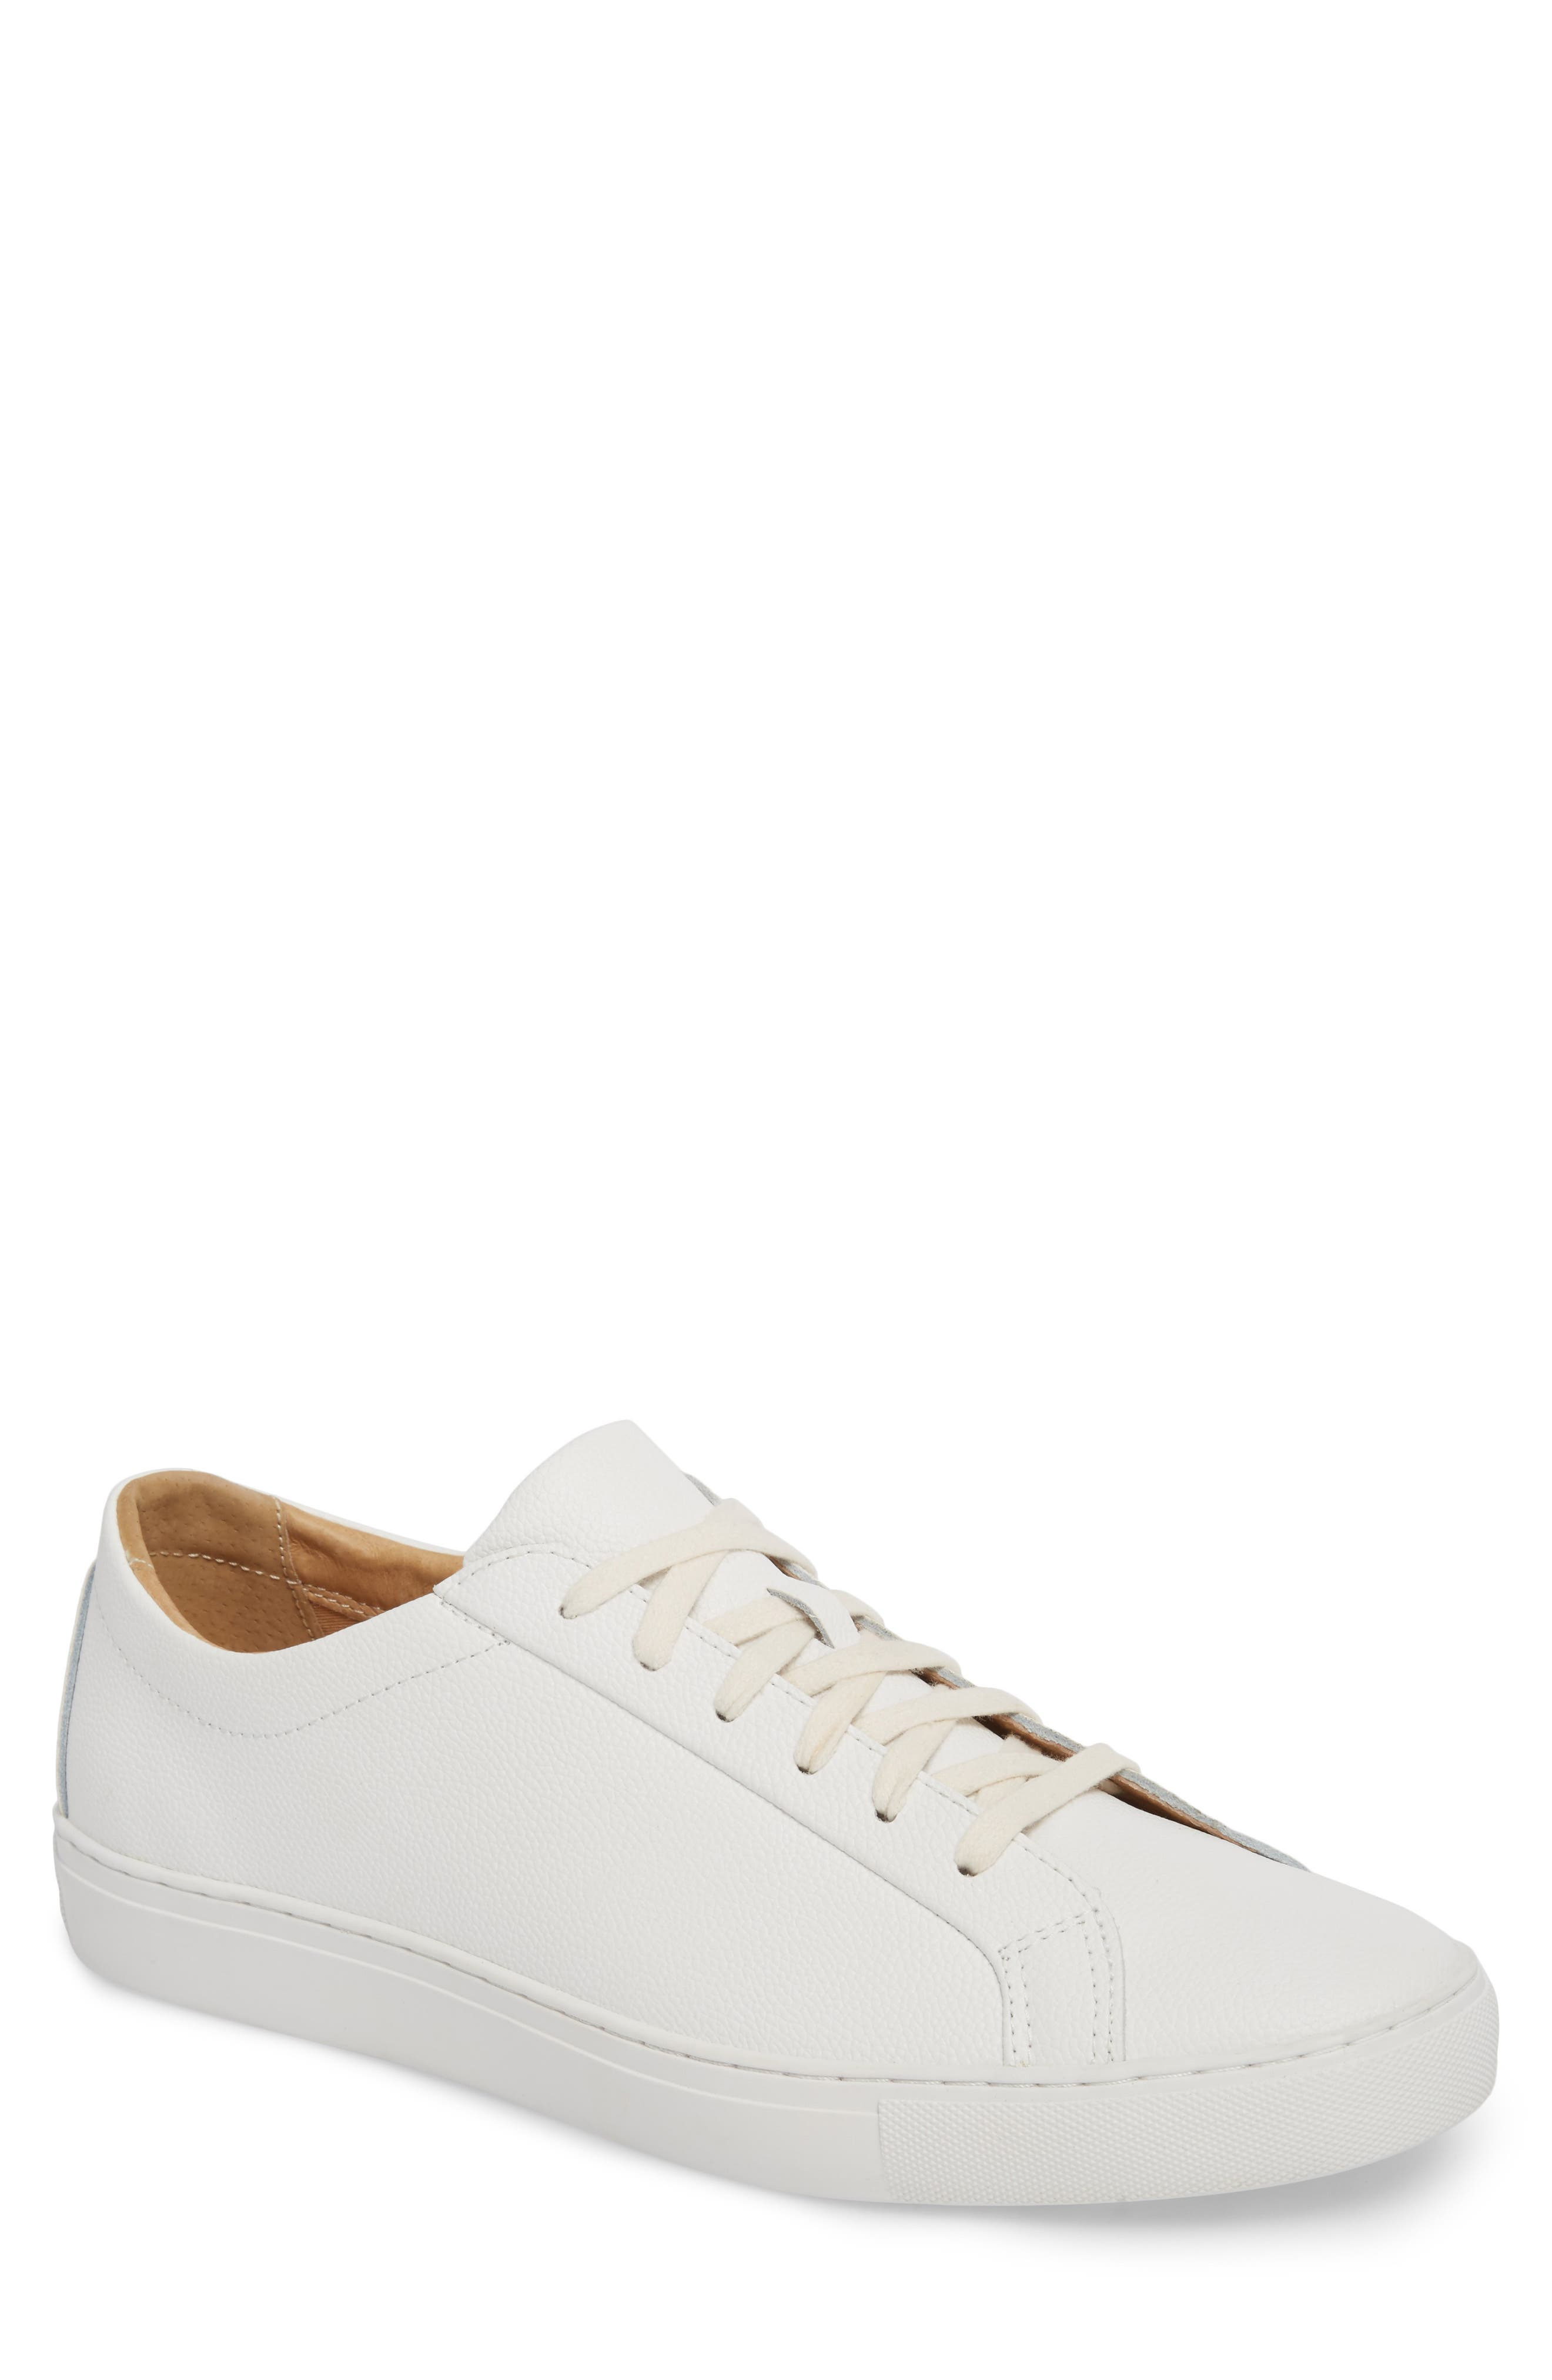 Kennedy Low Top Sneaker,                         Main,                         color, White Leather